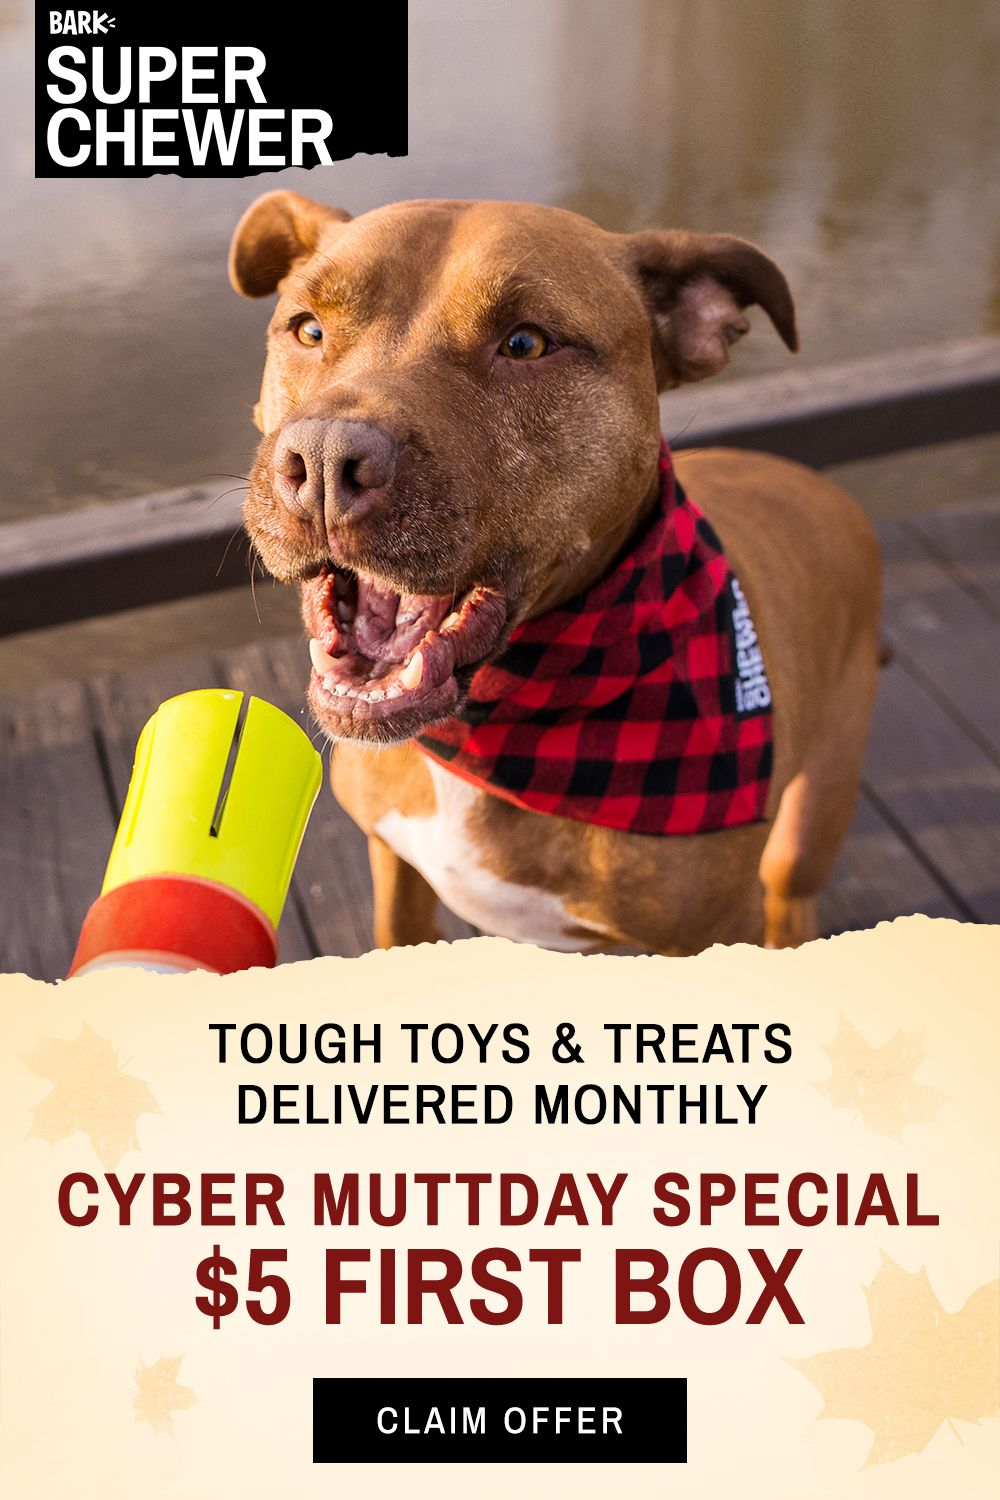 For Just 5 You Can Get Your Dog A Box Full Of Tough Toys Treats